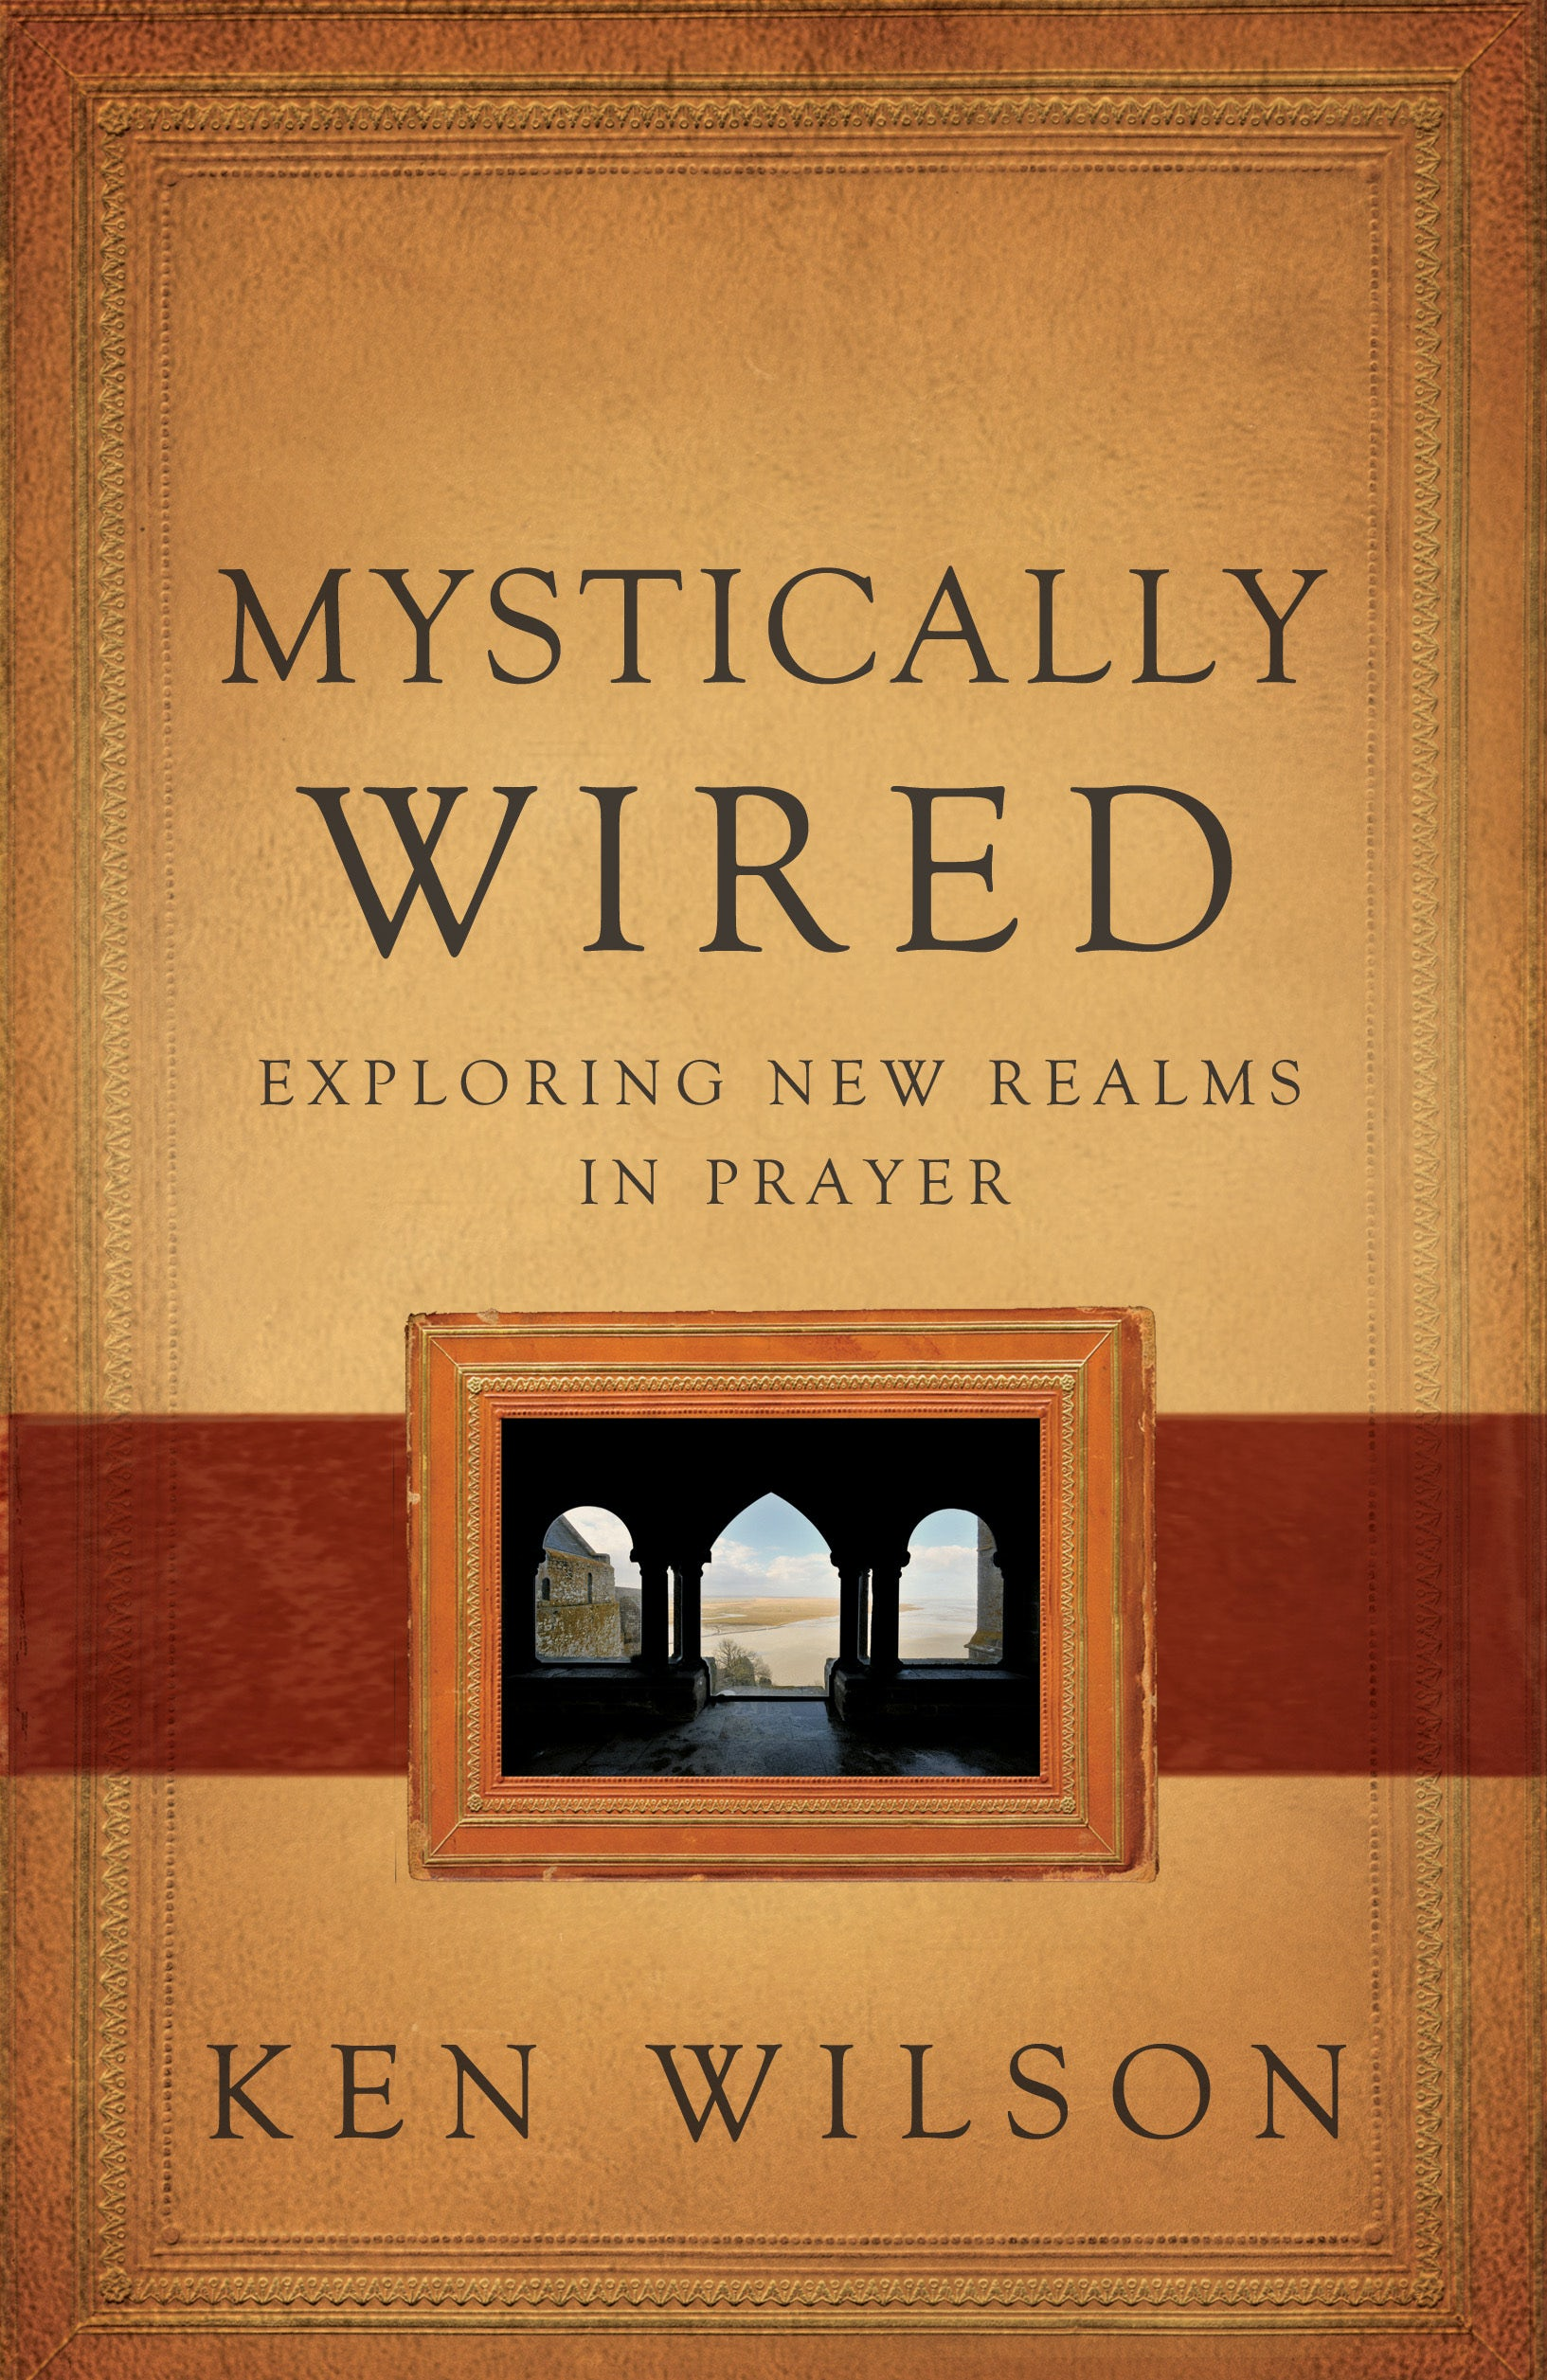 Wired Book | Mystically Wired